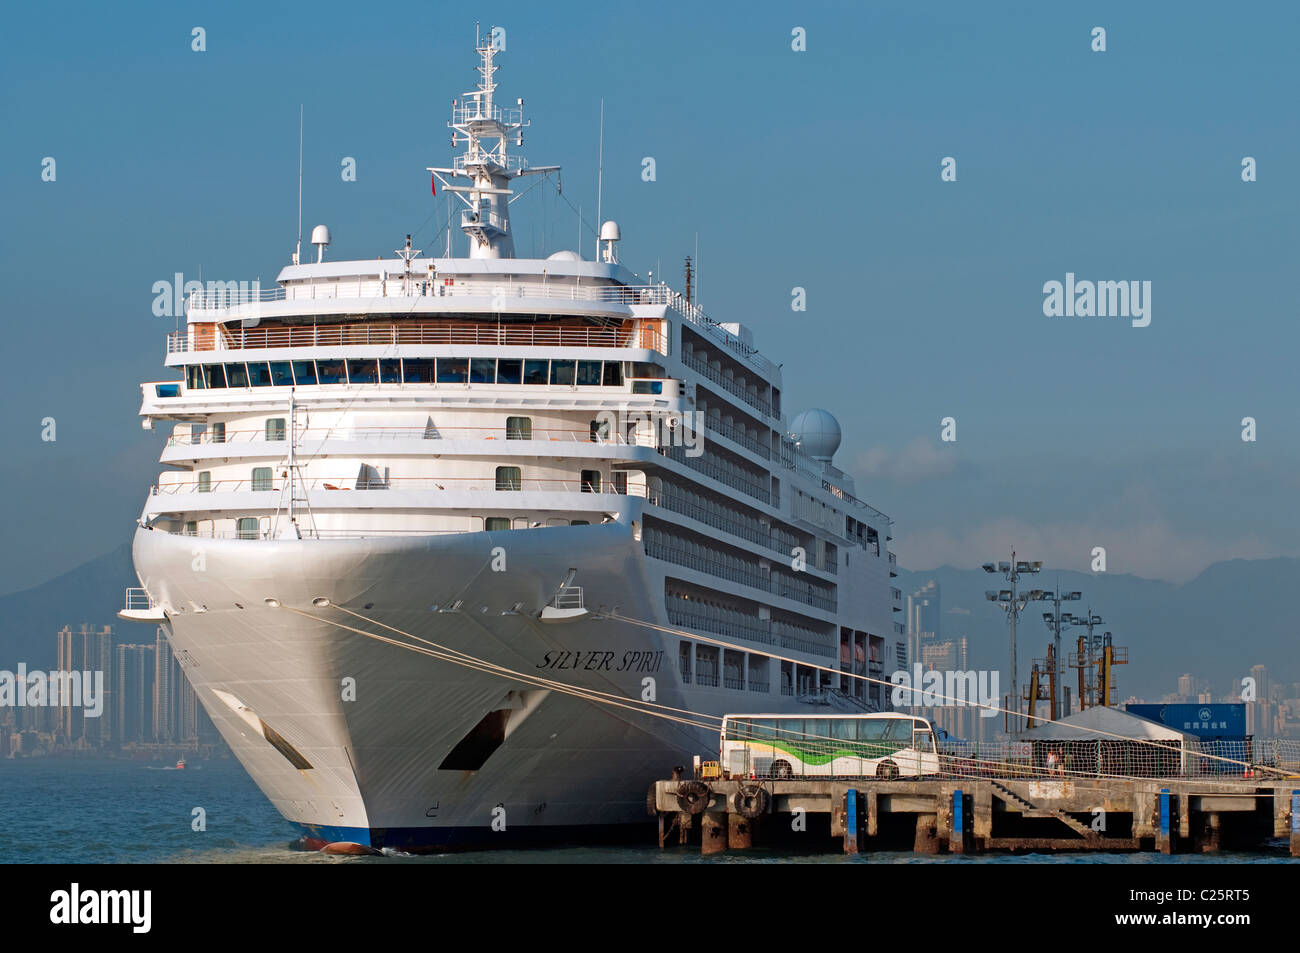 Cruise ships, Victoria harbor, Hong Kong, China. Stock Photo